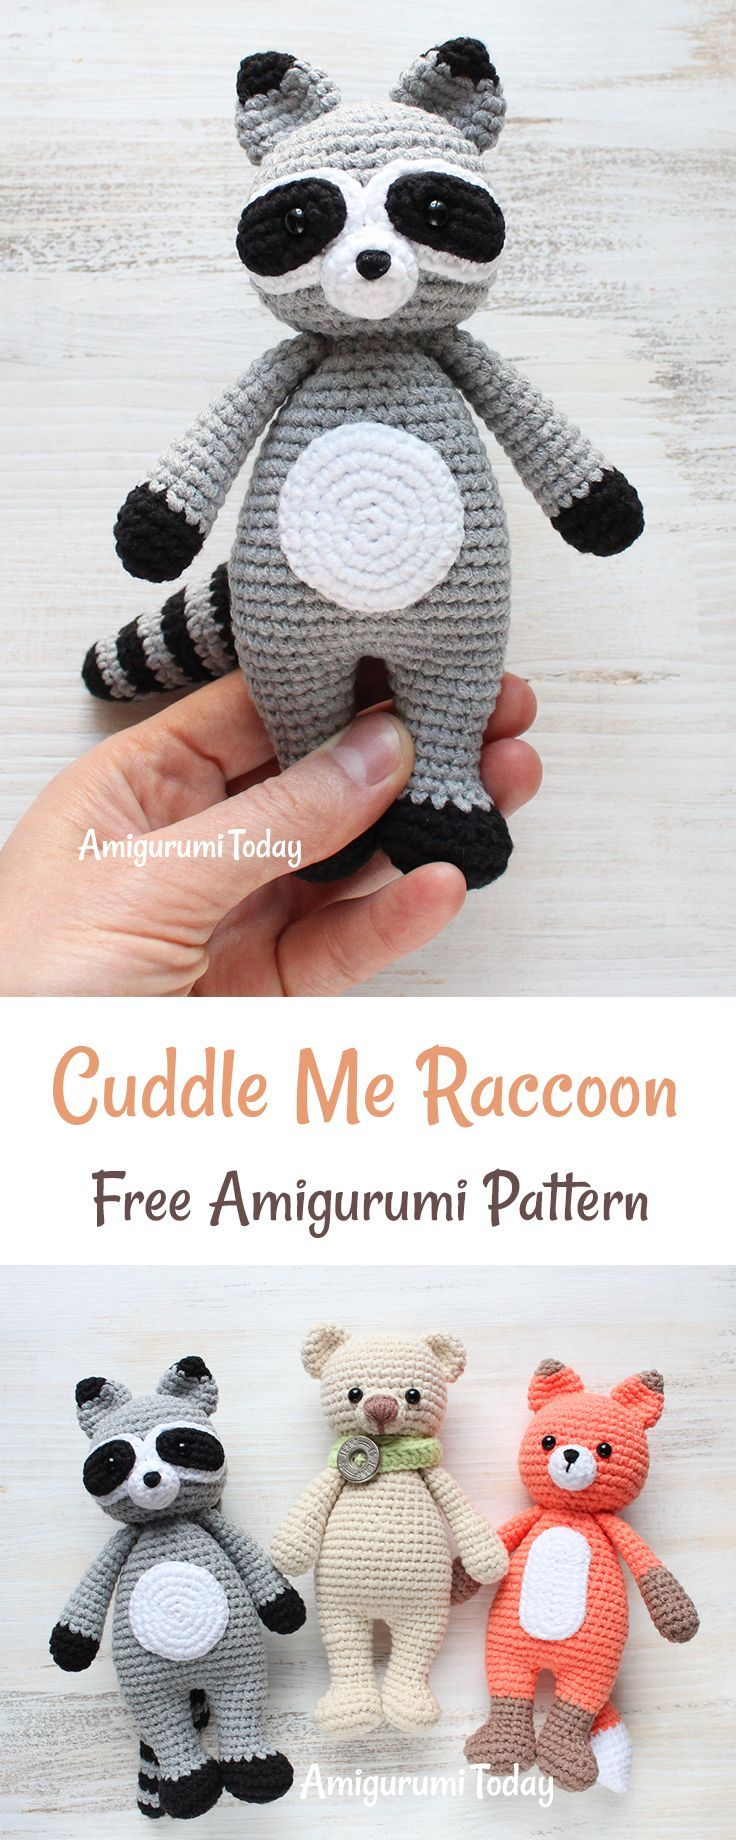 Free amigurumi pattern! This crochet raccoon with cute sly eyes will steal the heart of any child. It has a perfect size and softness for endless cuddles!